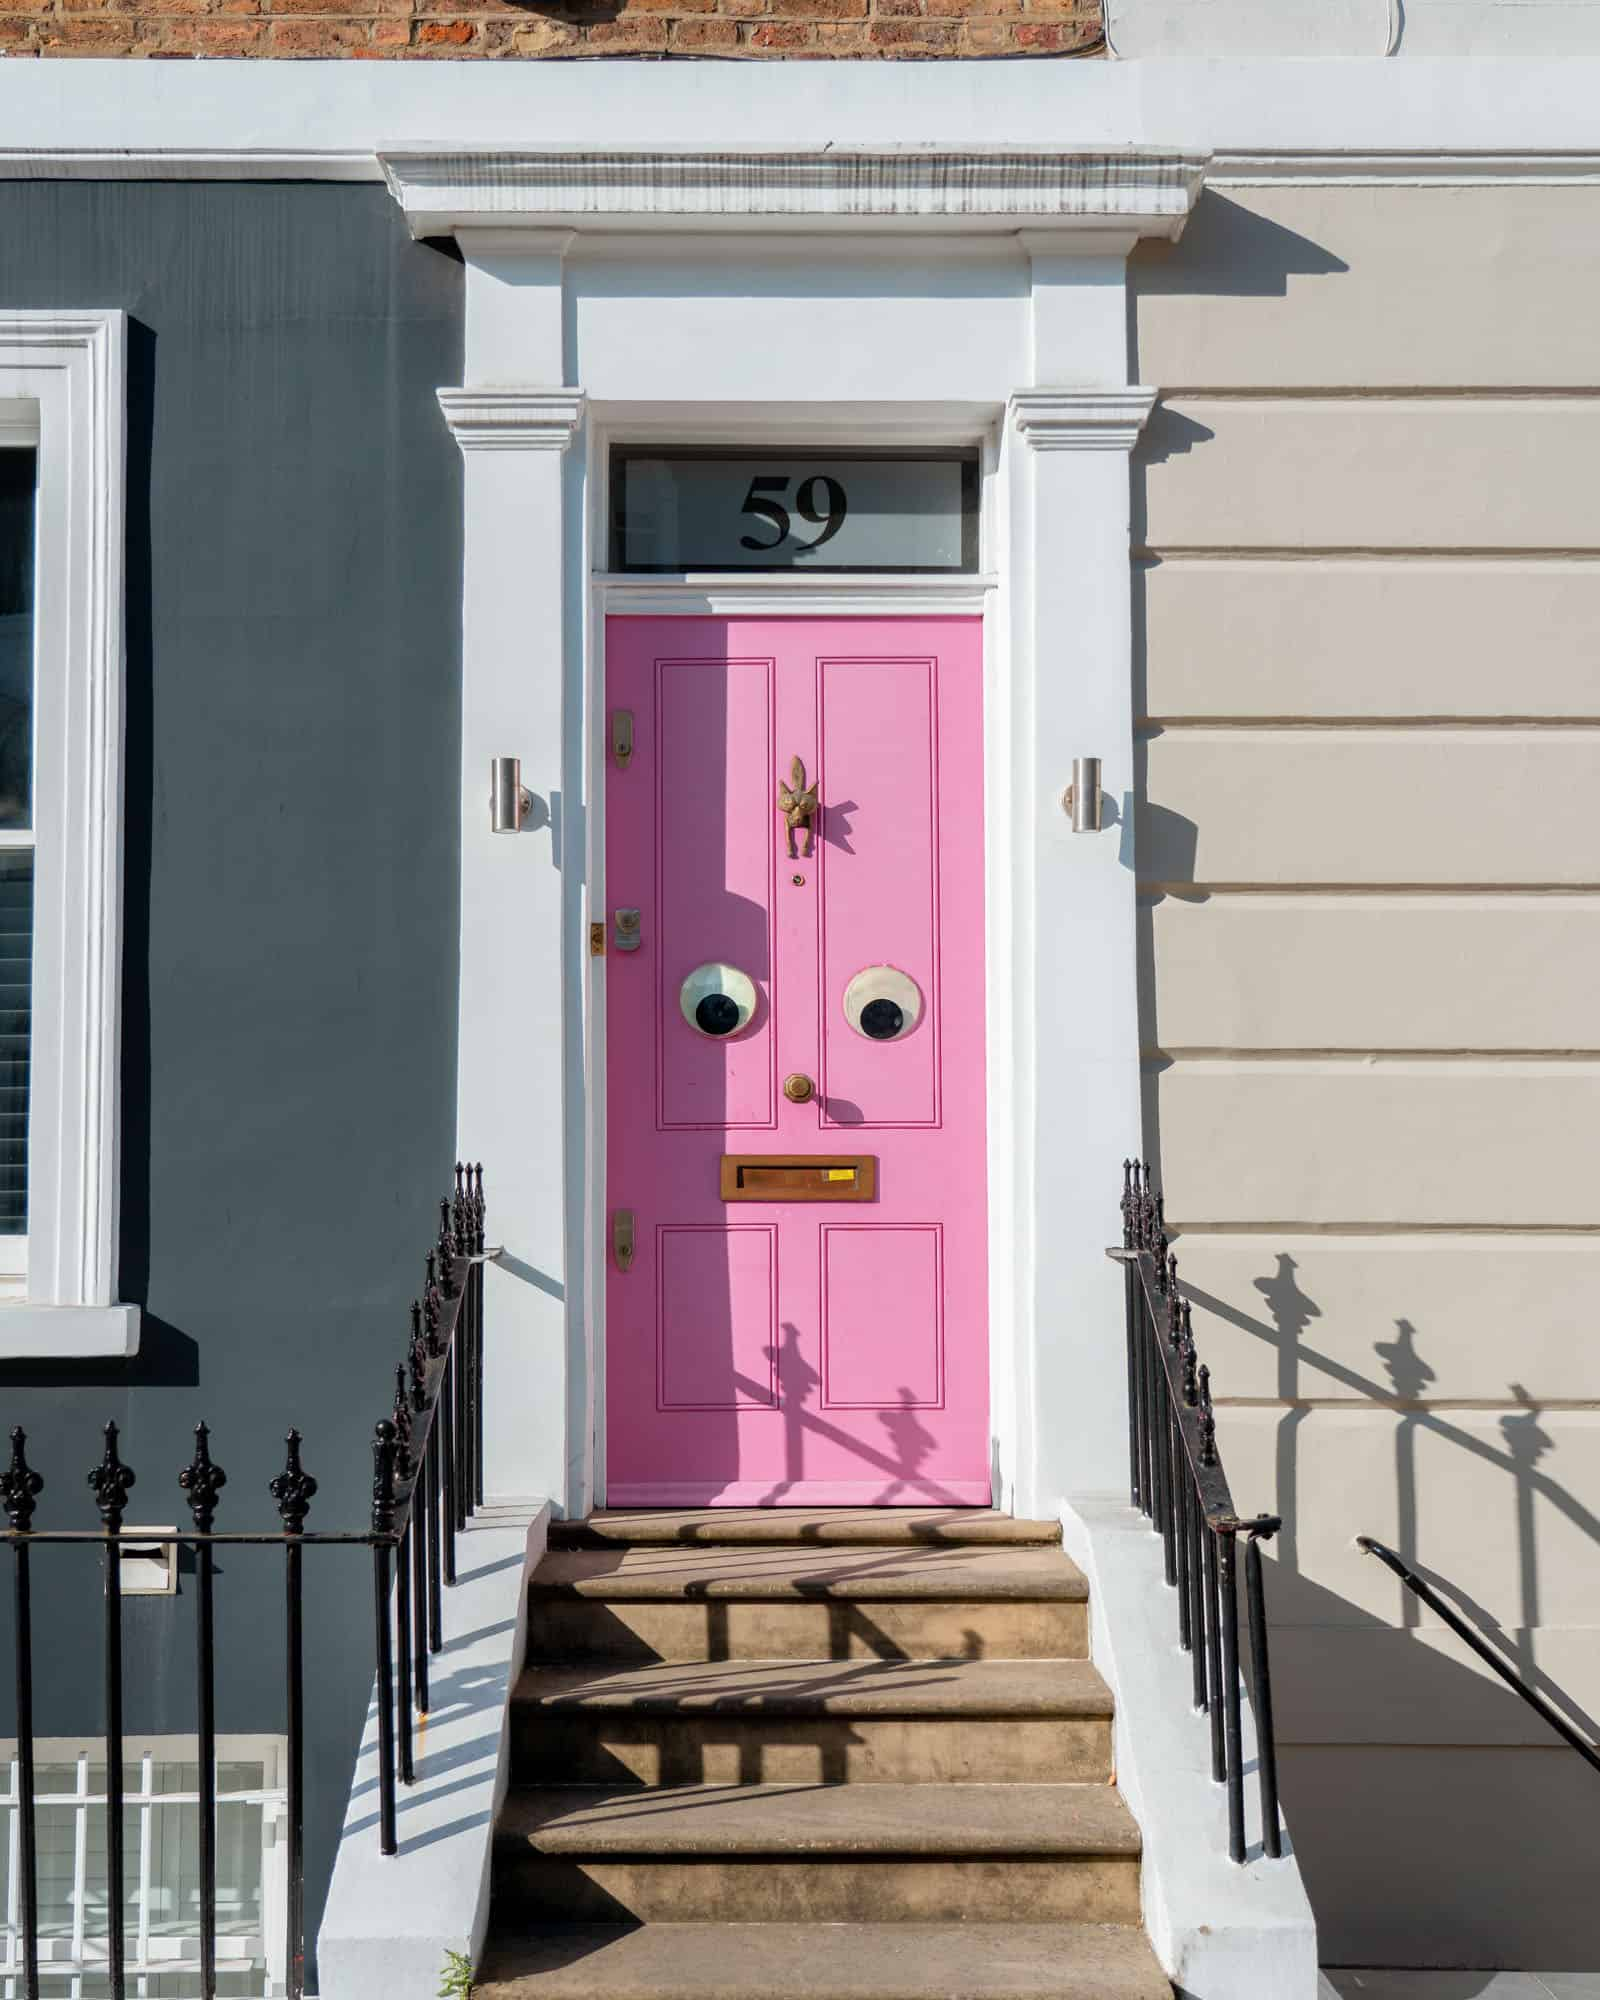 Insta-famous door with fun googly eyes at 59 Portland Road Notting Hill